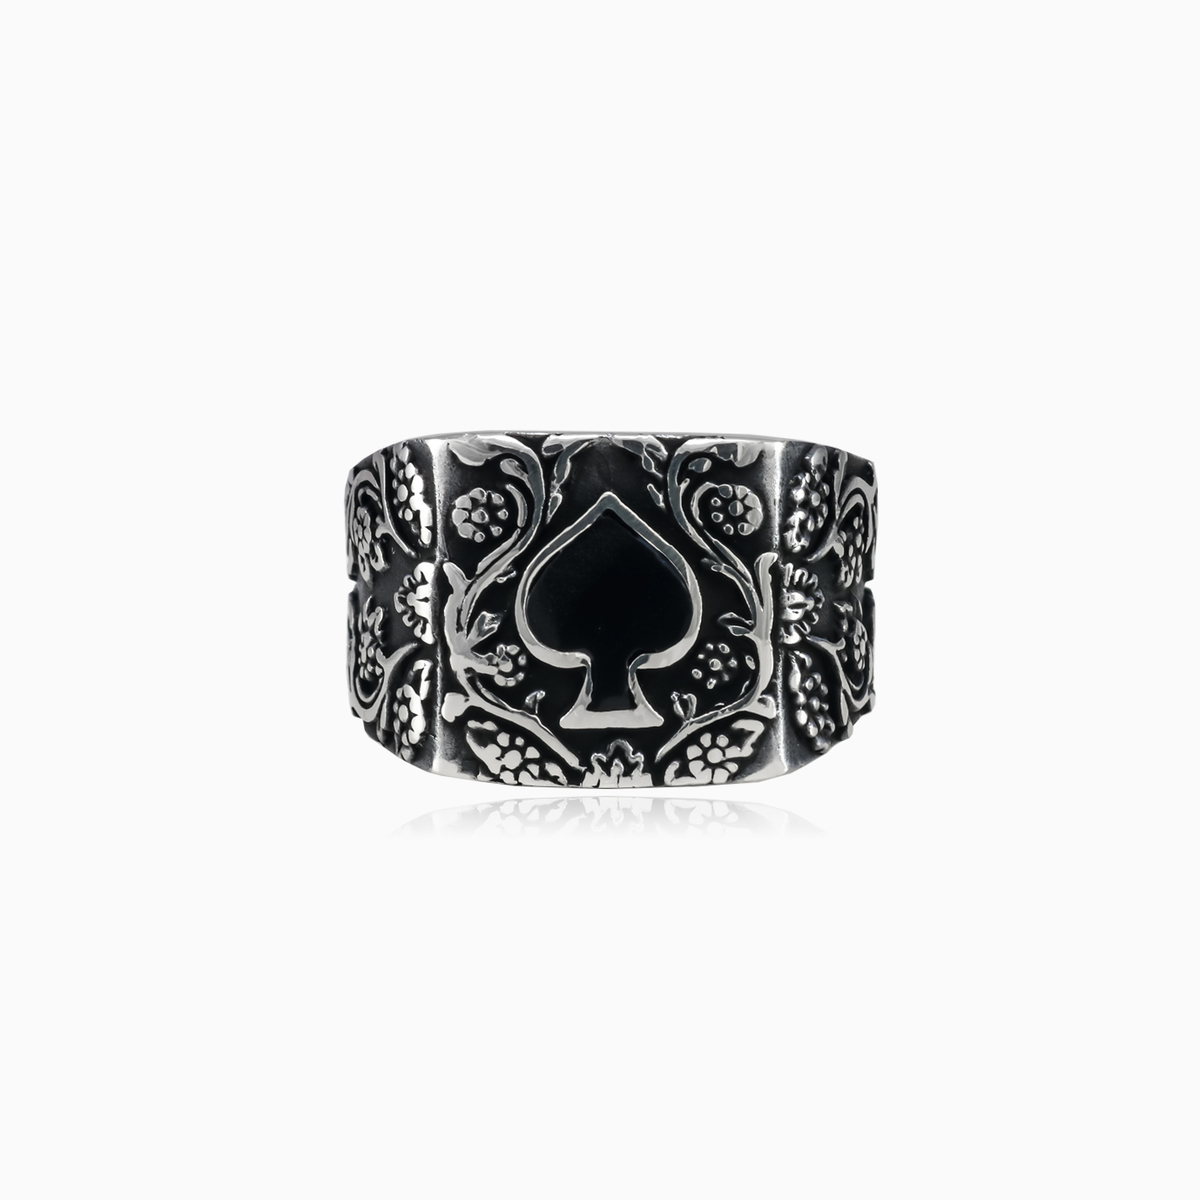 high shape a fullxfull it ring ornament heavy style celtic man products rings jewelry il quality size any antique silver l sterling